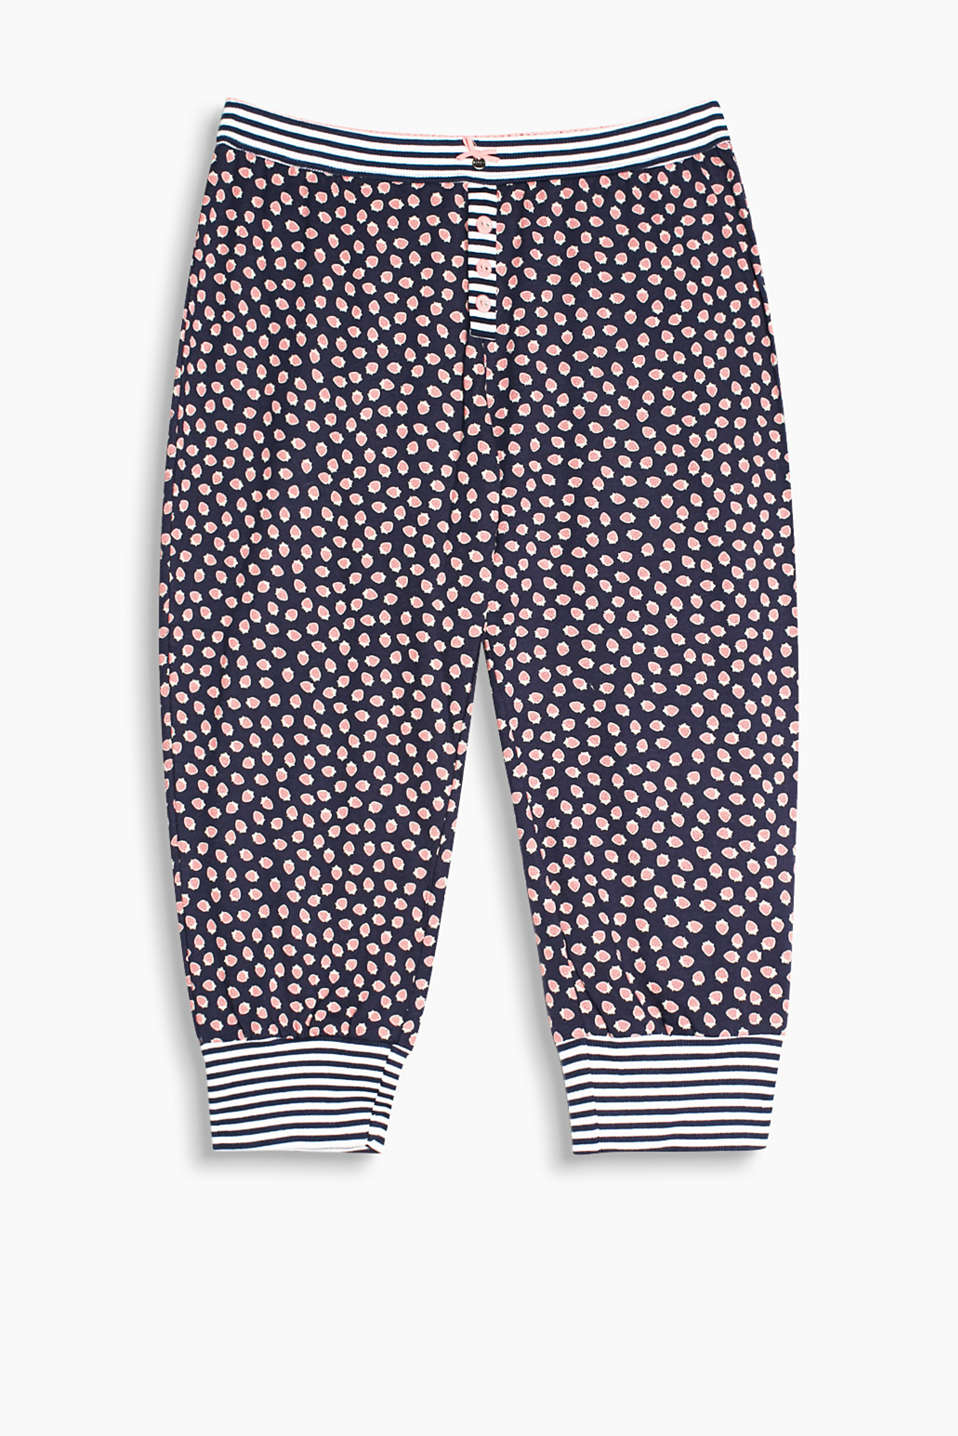 Tracksuit bottoms with a large strawberry print, cuffed legs and an attached waistband